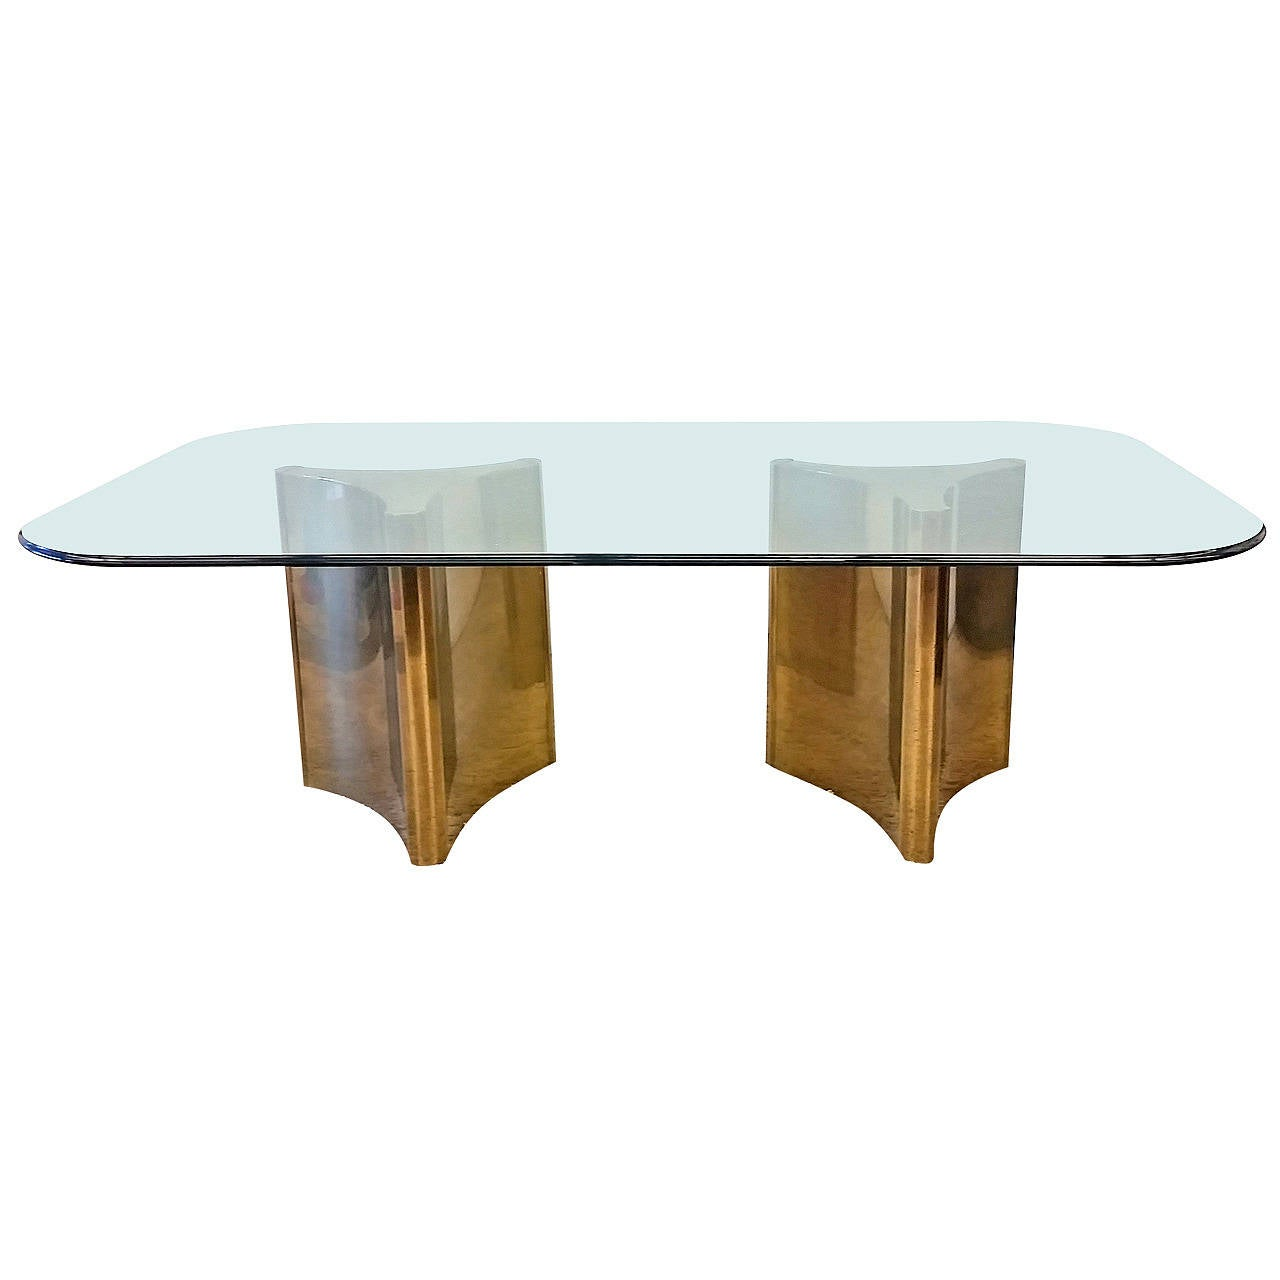 trefoile brass double pedestal dining table is no longer available